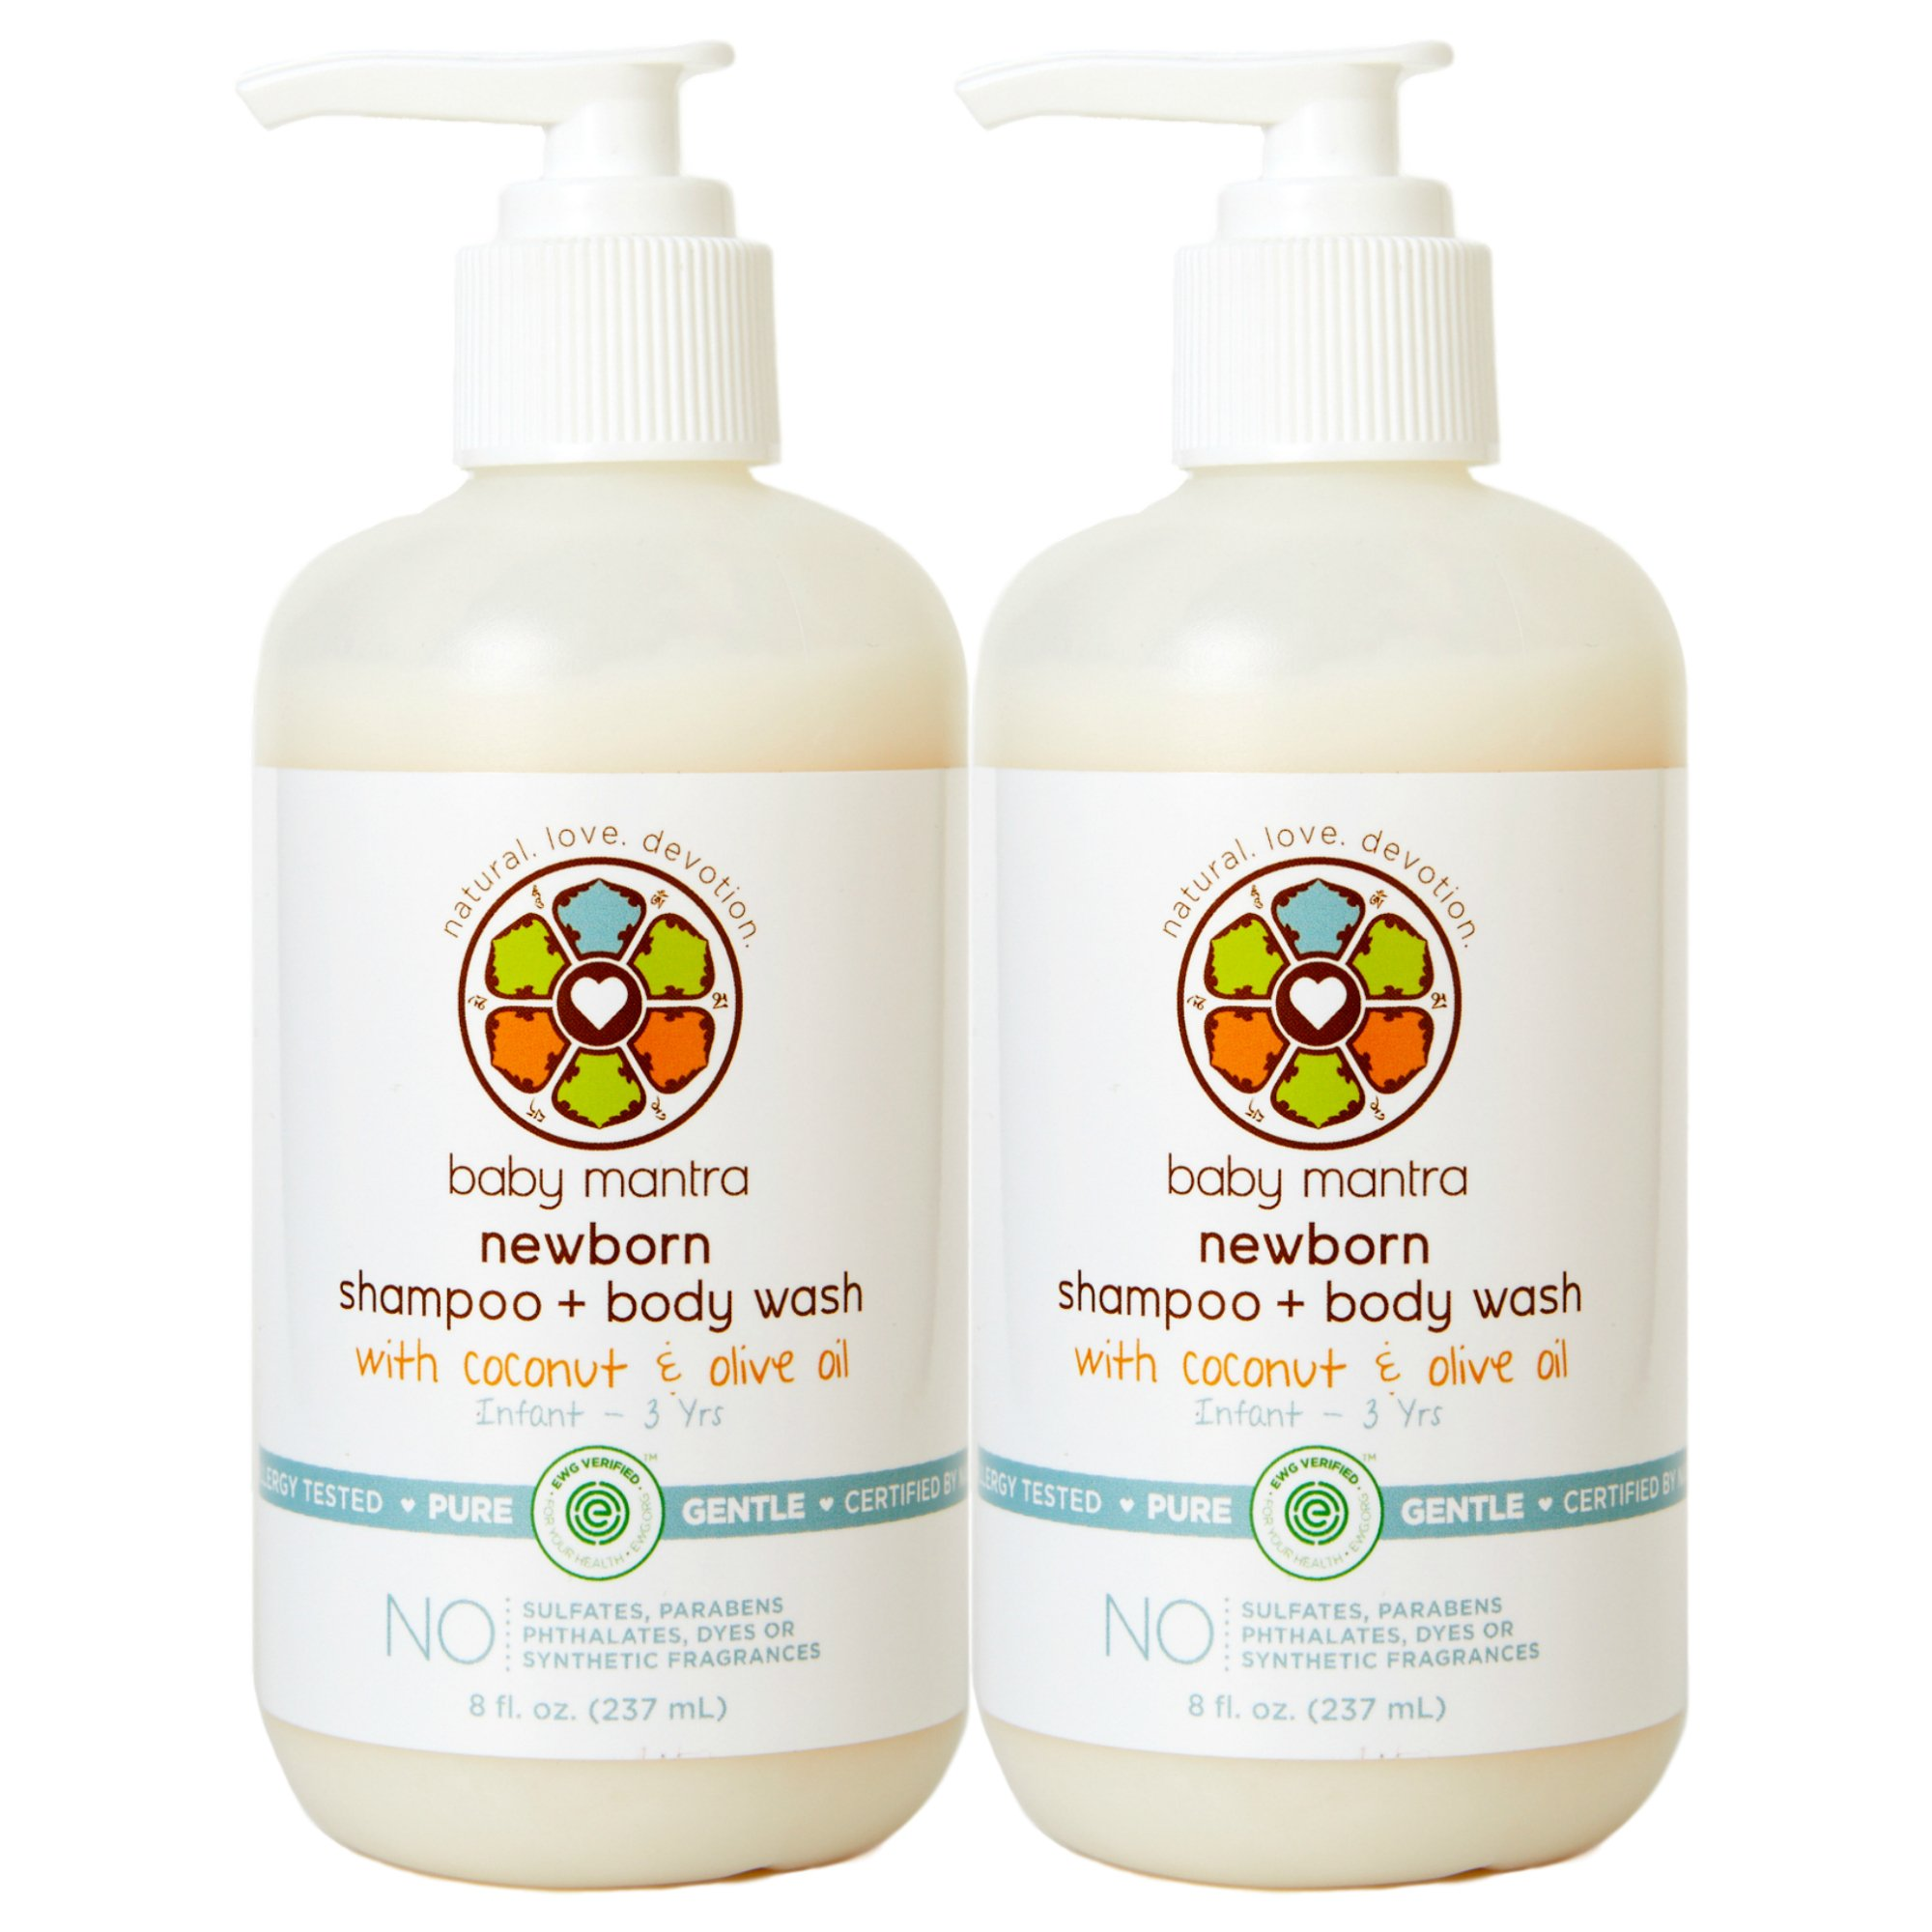 Baby Mantra 2-in-1 Shampoo and Body Wash - EWG Verified Bath Soap for Infants, Toddlers, and Kids with Sensitive Skin, 8 Ounce Pump Bottle (Pack of 2) by Baby Mantra